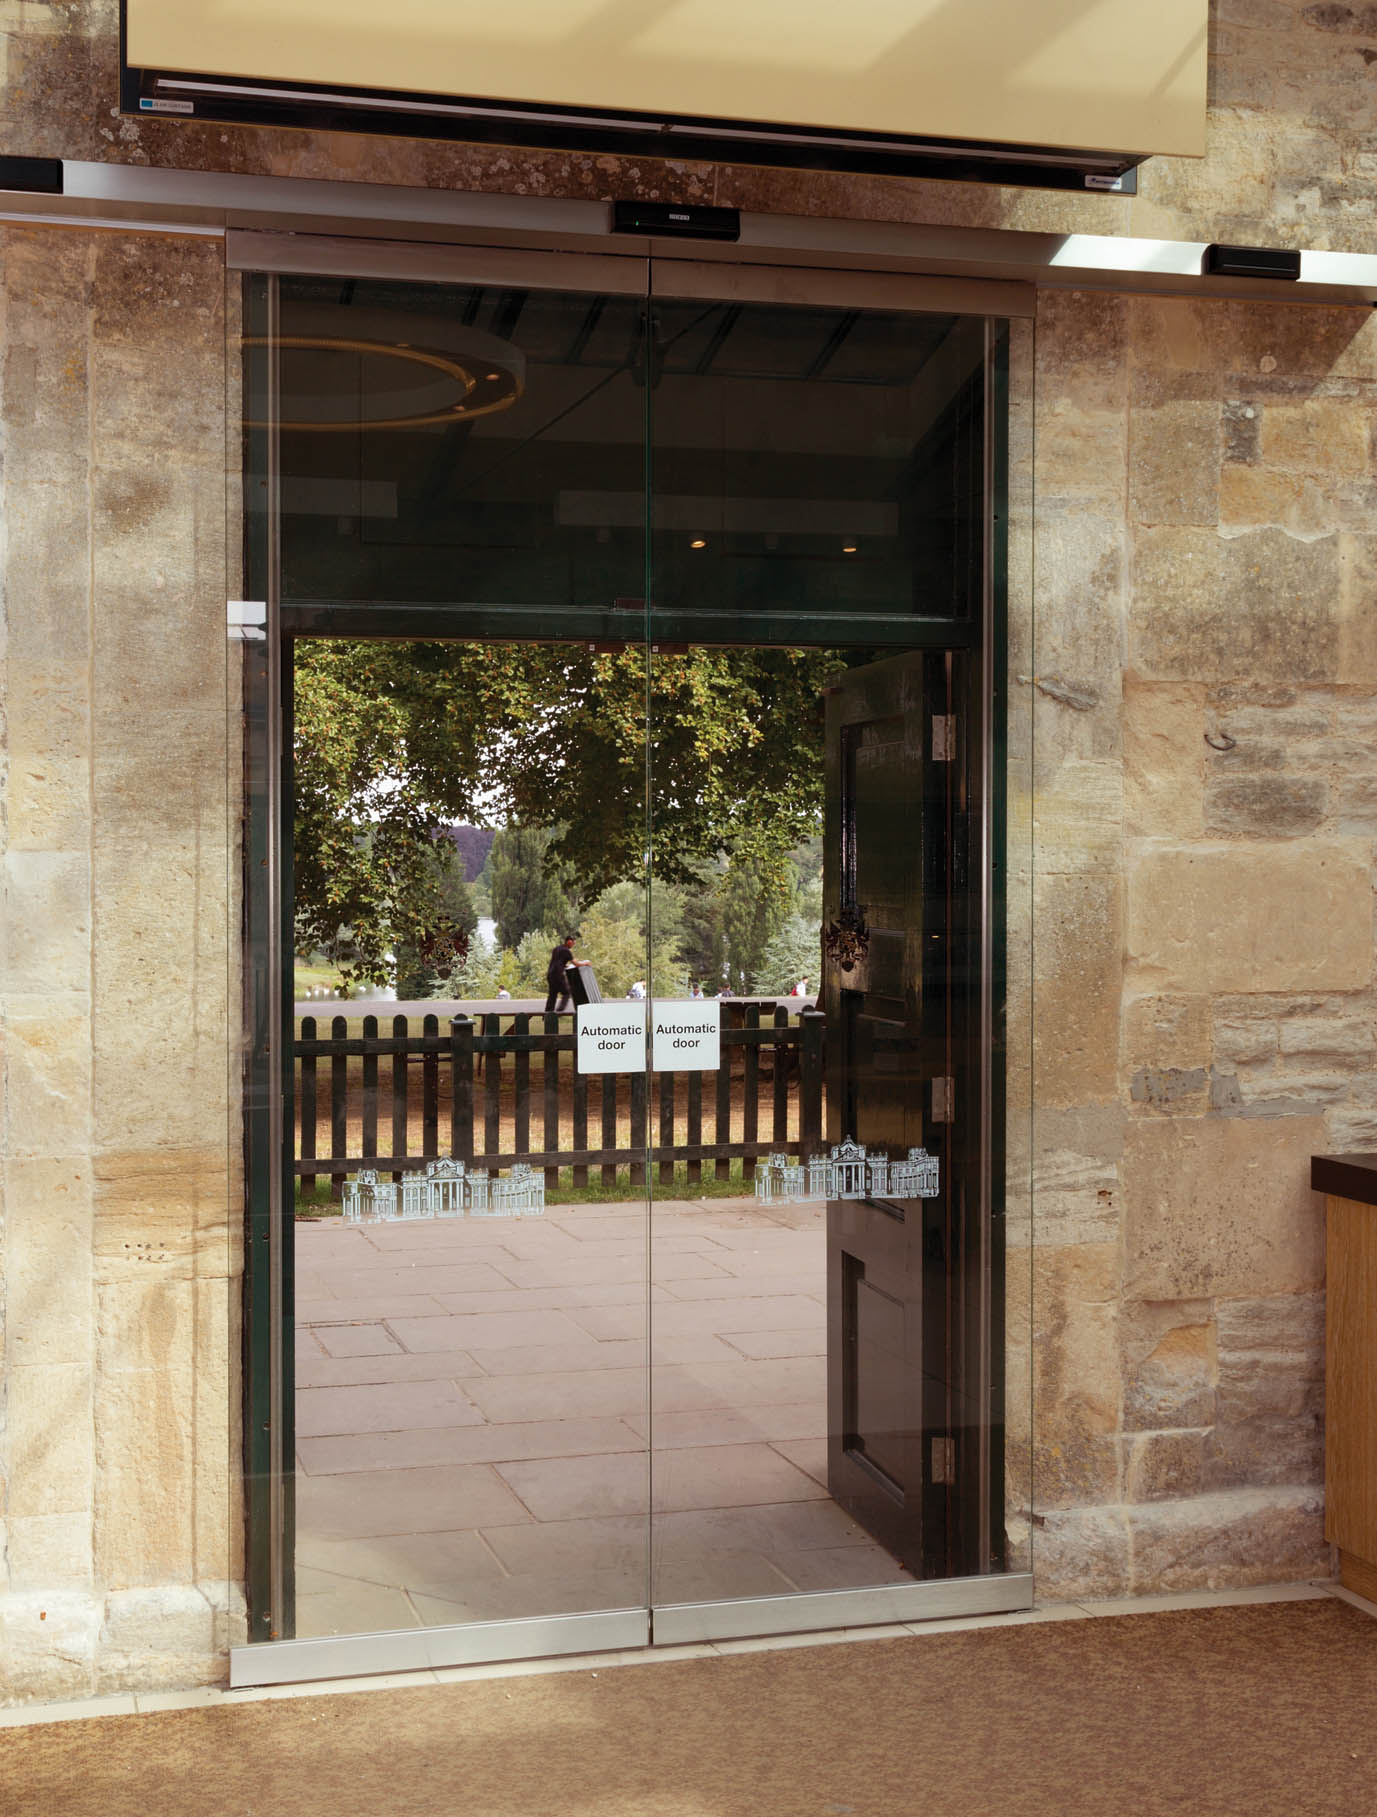 For more information about the Slimdrive SL automatic door system from GEZE UK or its comprehensive range of door and window control systems call 01543 ... & GEZE UK was the automatic choice for Blenheim Palace u2013 Design Buy Build